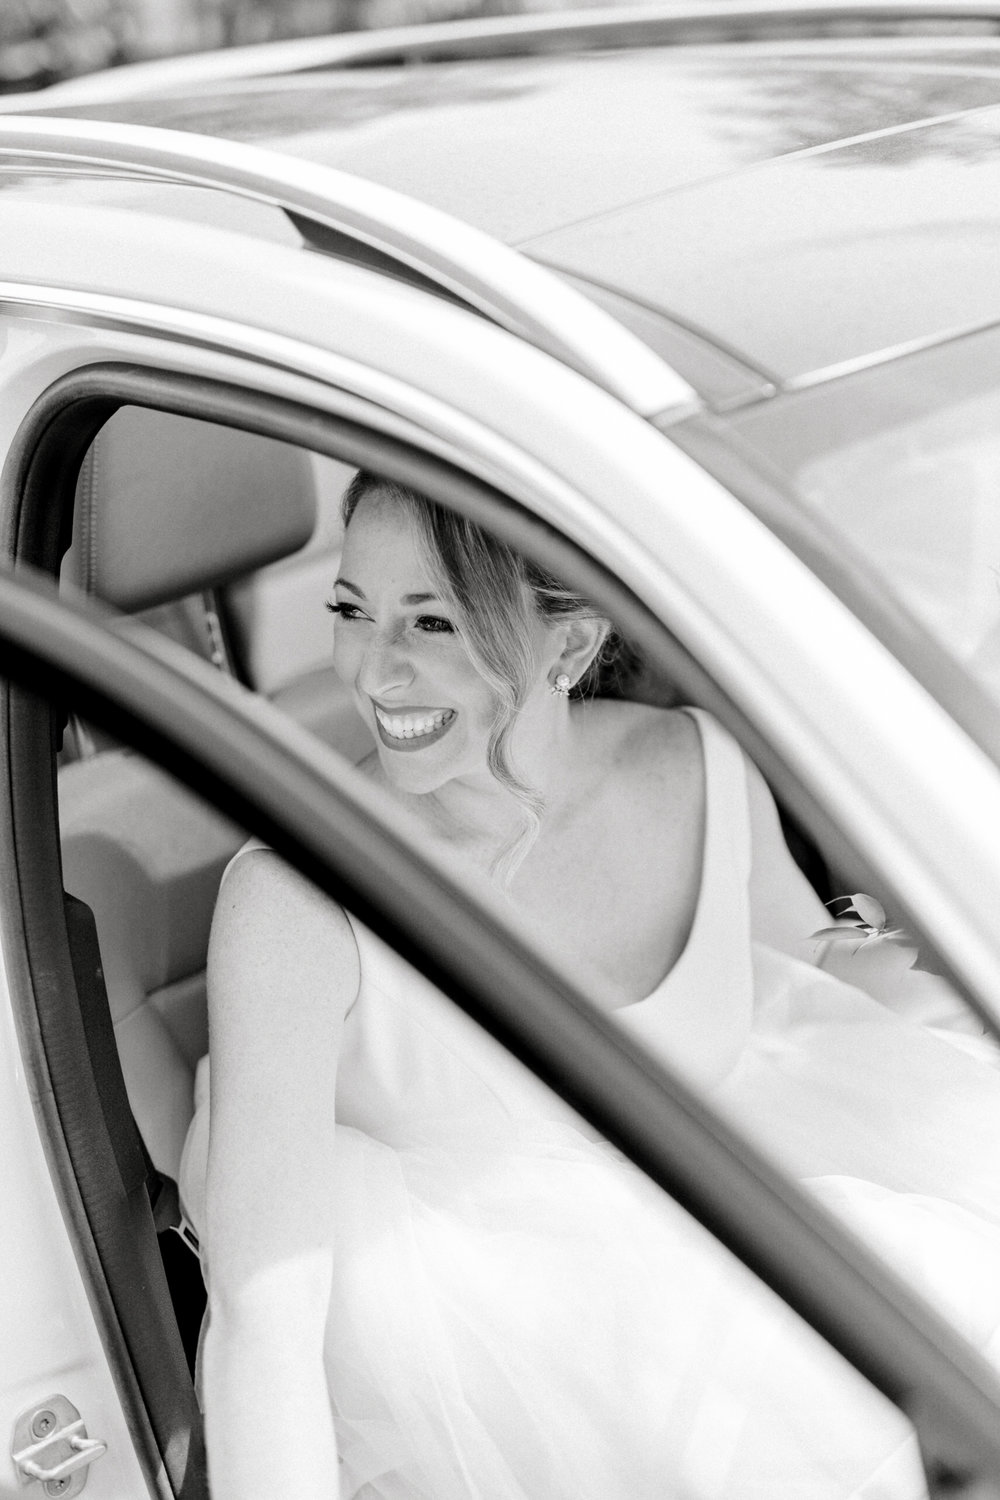 Kerry arrives at her wedding in style with a huge smile that lights up the room. She had such a classic look for her Italian themed wedding day at the Baltimore Country Club.